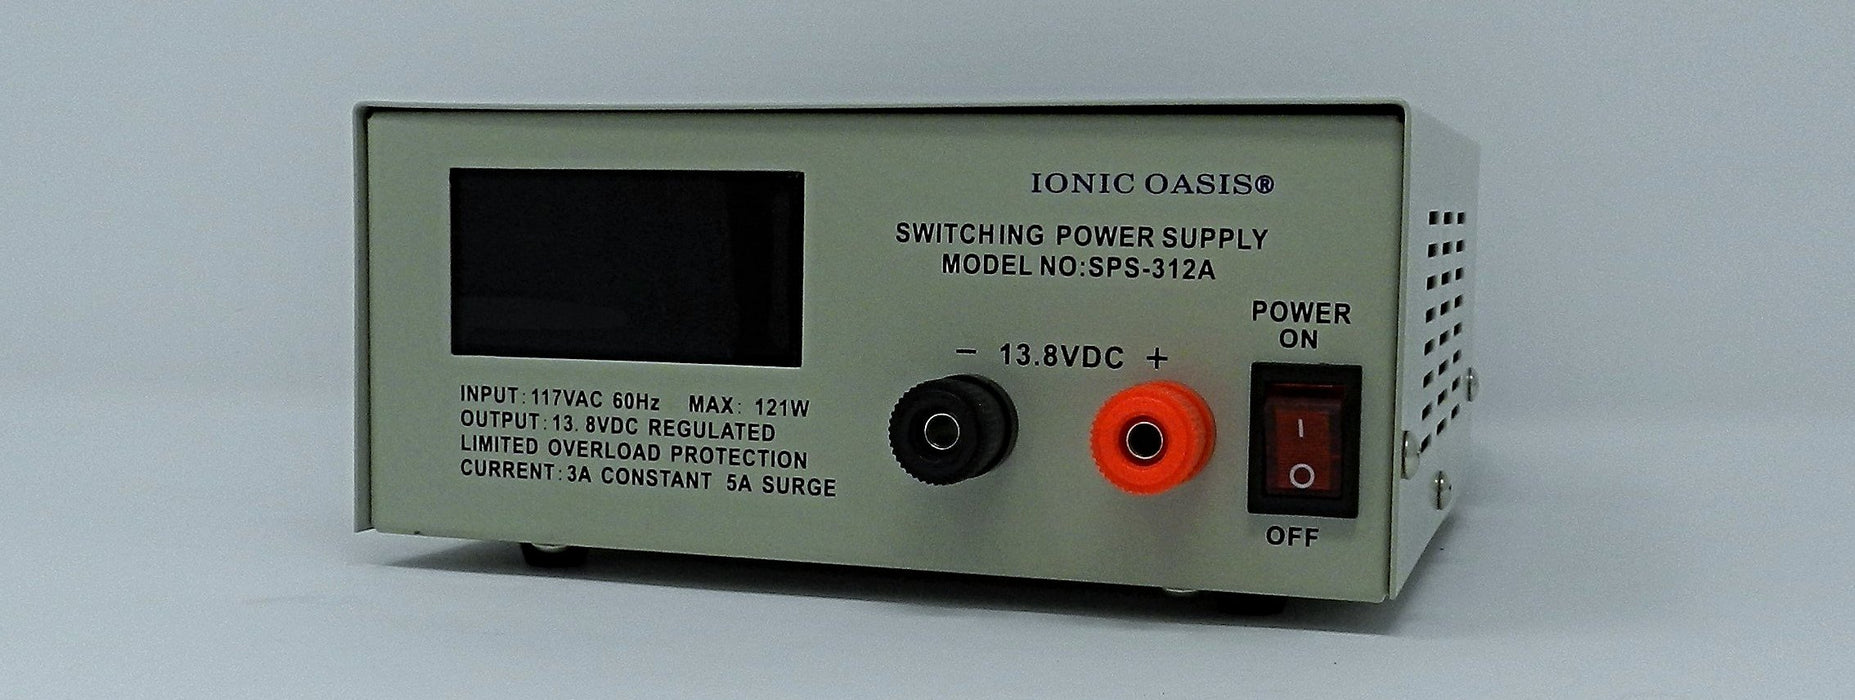 13.8VDC @ 5A DC Regulated Switching Power Supply; LED Volt Meter; Part # SPS-312A